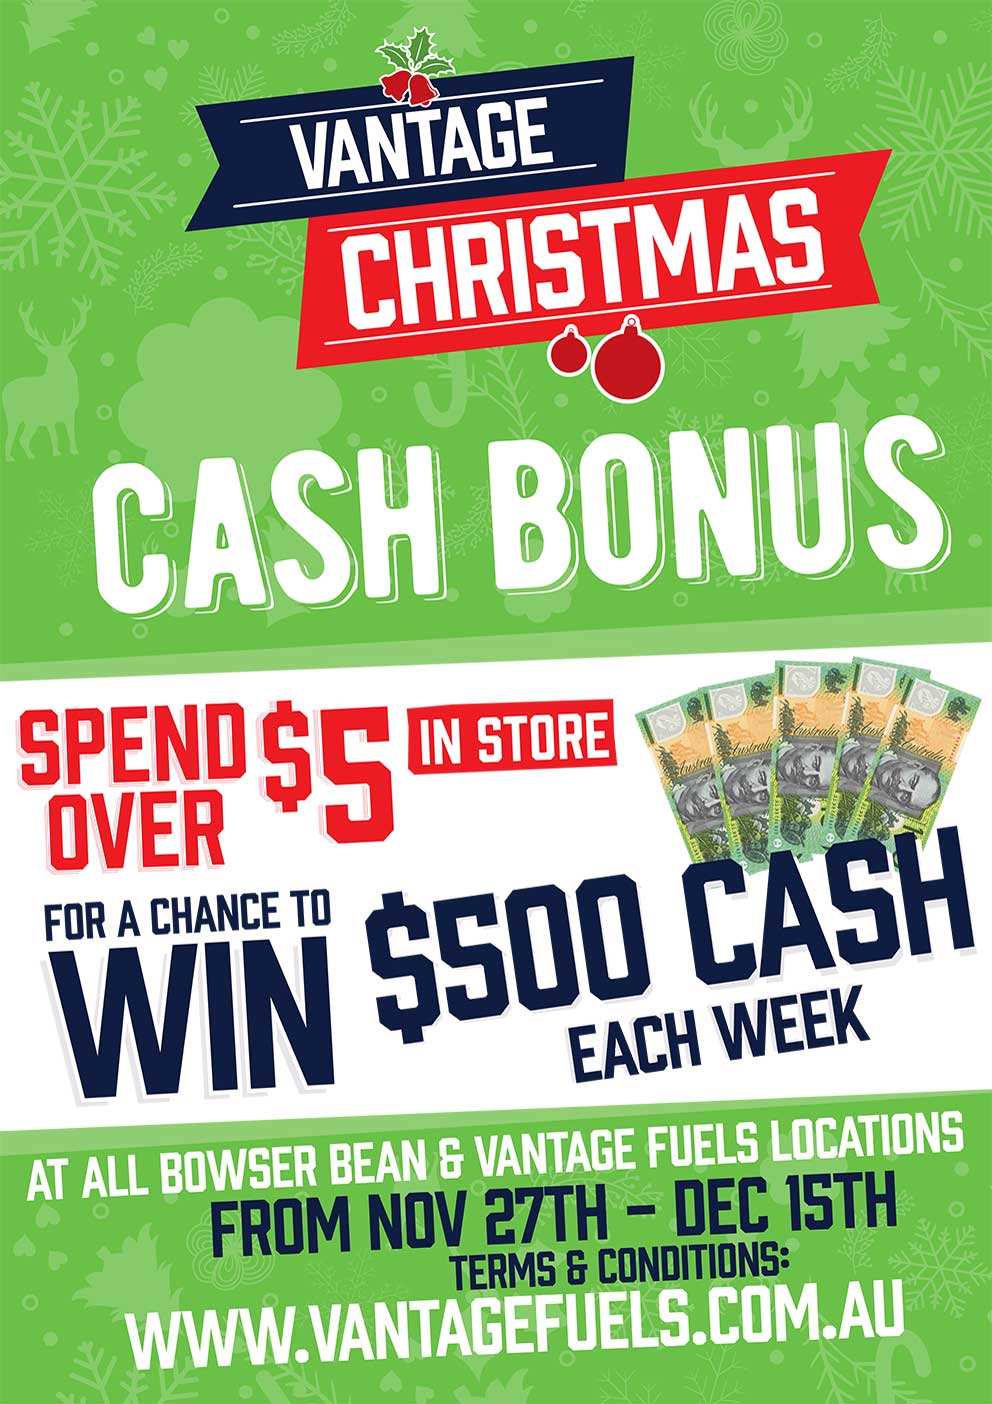 Vantage Christmas Cash Bonus. Spend over $5 in store for a chance to win $500 cash each week. At all Bowser Bean and Vantage Fuels locations from Nov 27th - Dec 15th. Terms and conditions www.vantagefuels.com.au